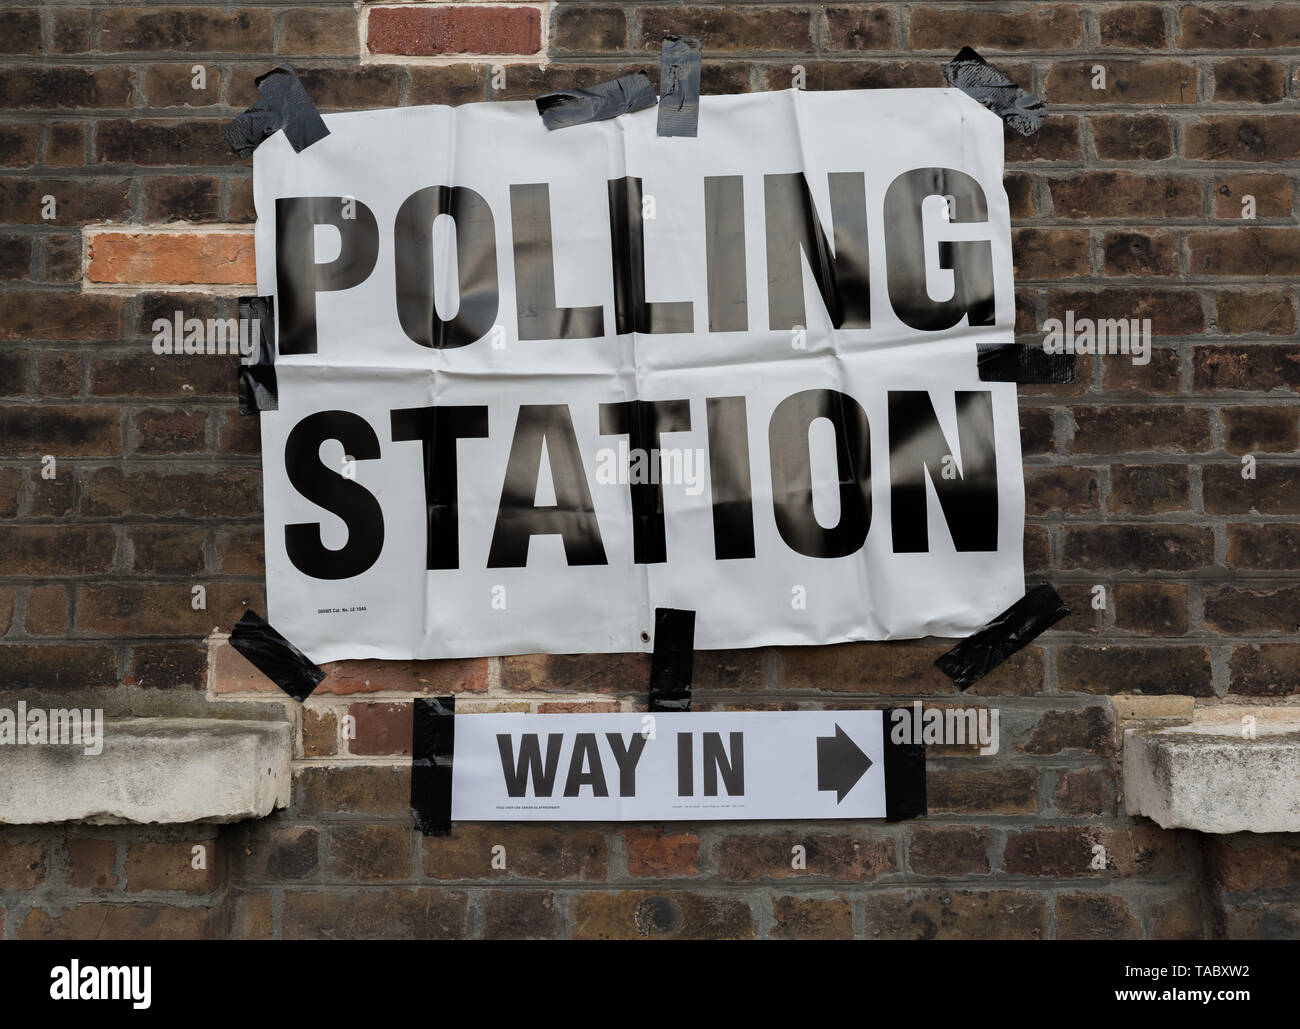 London, UK. 23rd May, 2019. European Election Polling Day in Greenwich, south east London. Credit: Guy Corbishley/Alamy Live News - Stock Image